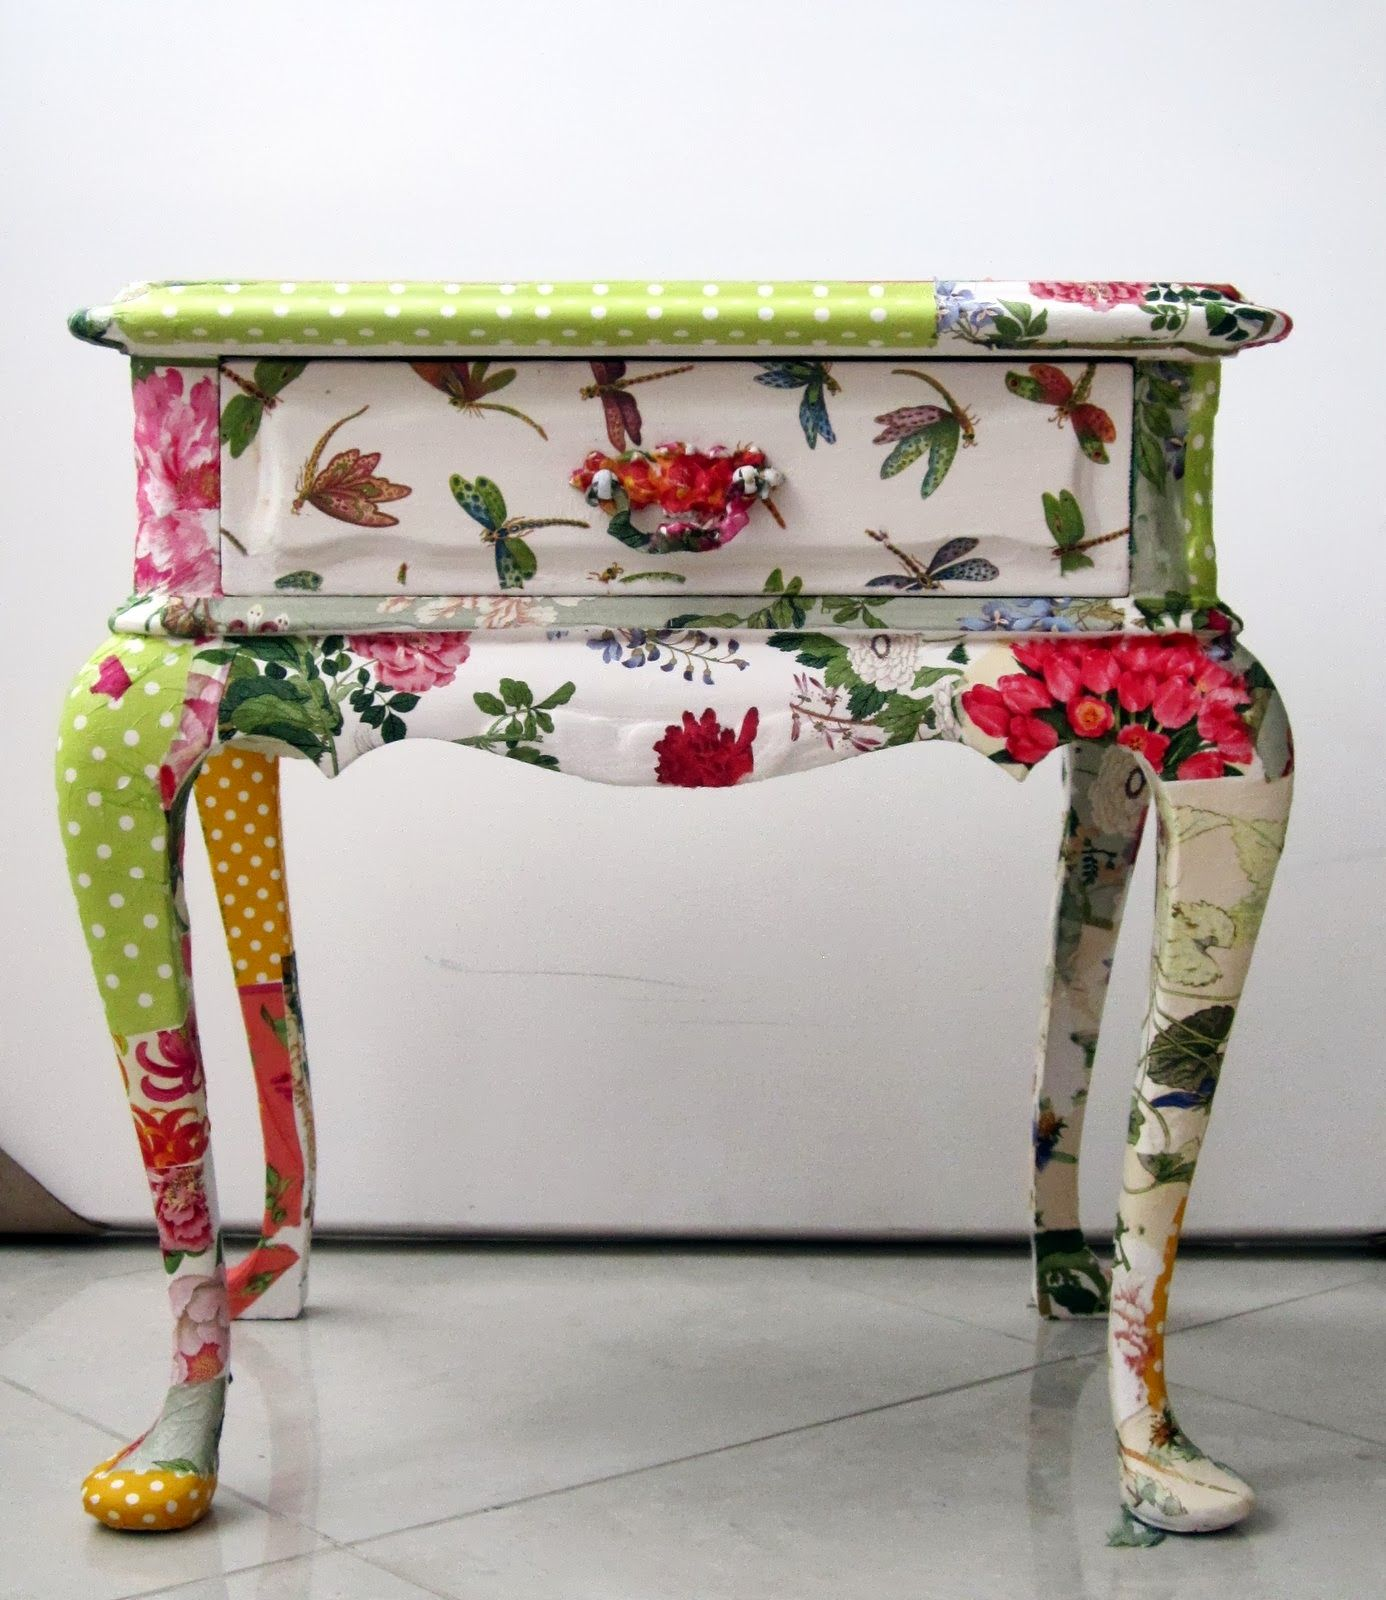 decoupage ideas for furniture. DIY Home Decor Inspiration - Recycled Side Table Decoupage Ideas For Furniture U